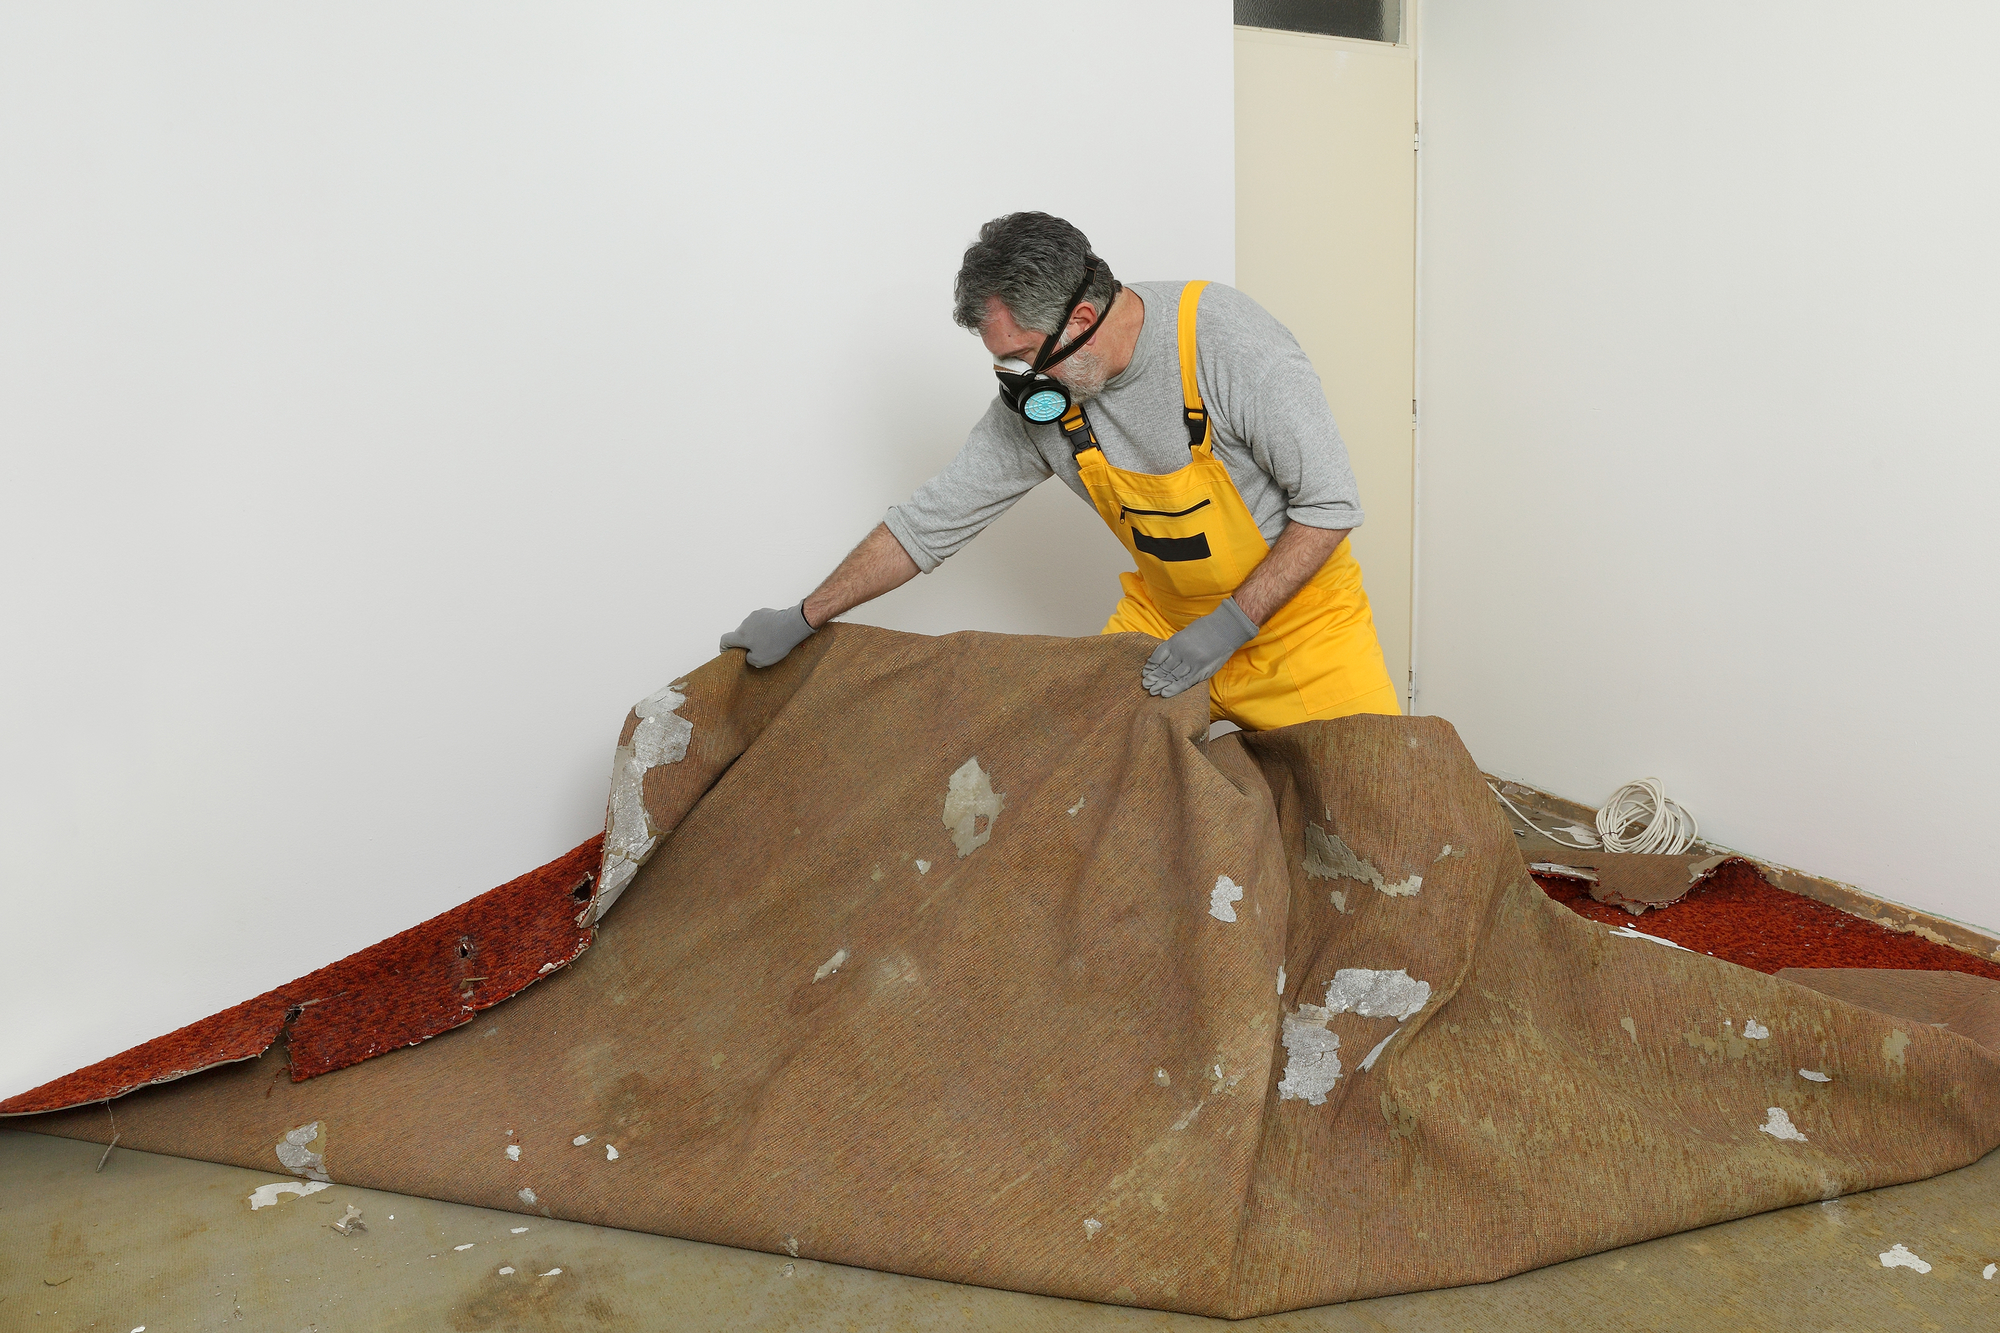 Removing Carpet During Apartment Turnover Projects